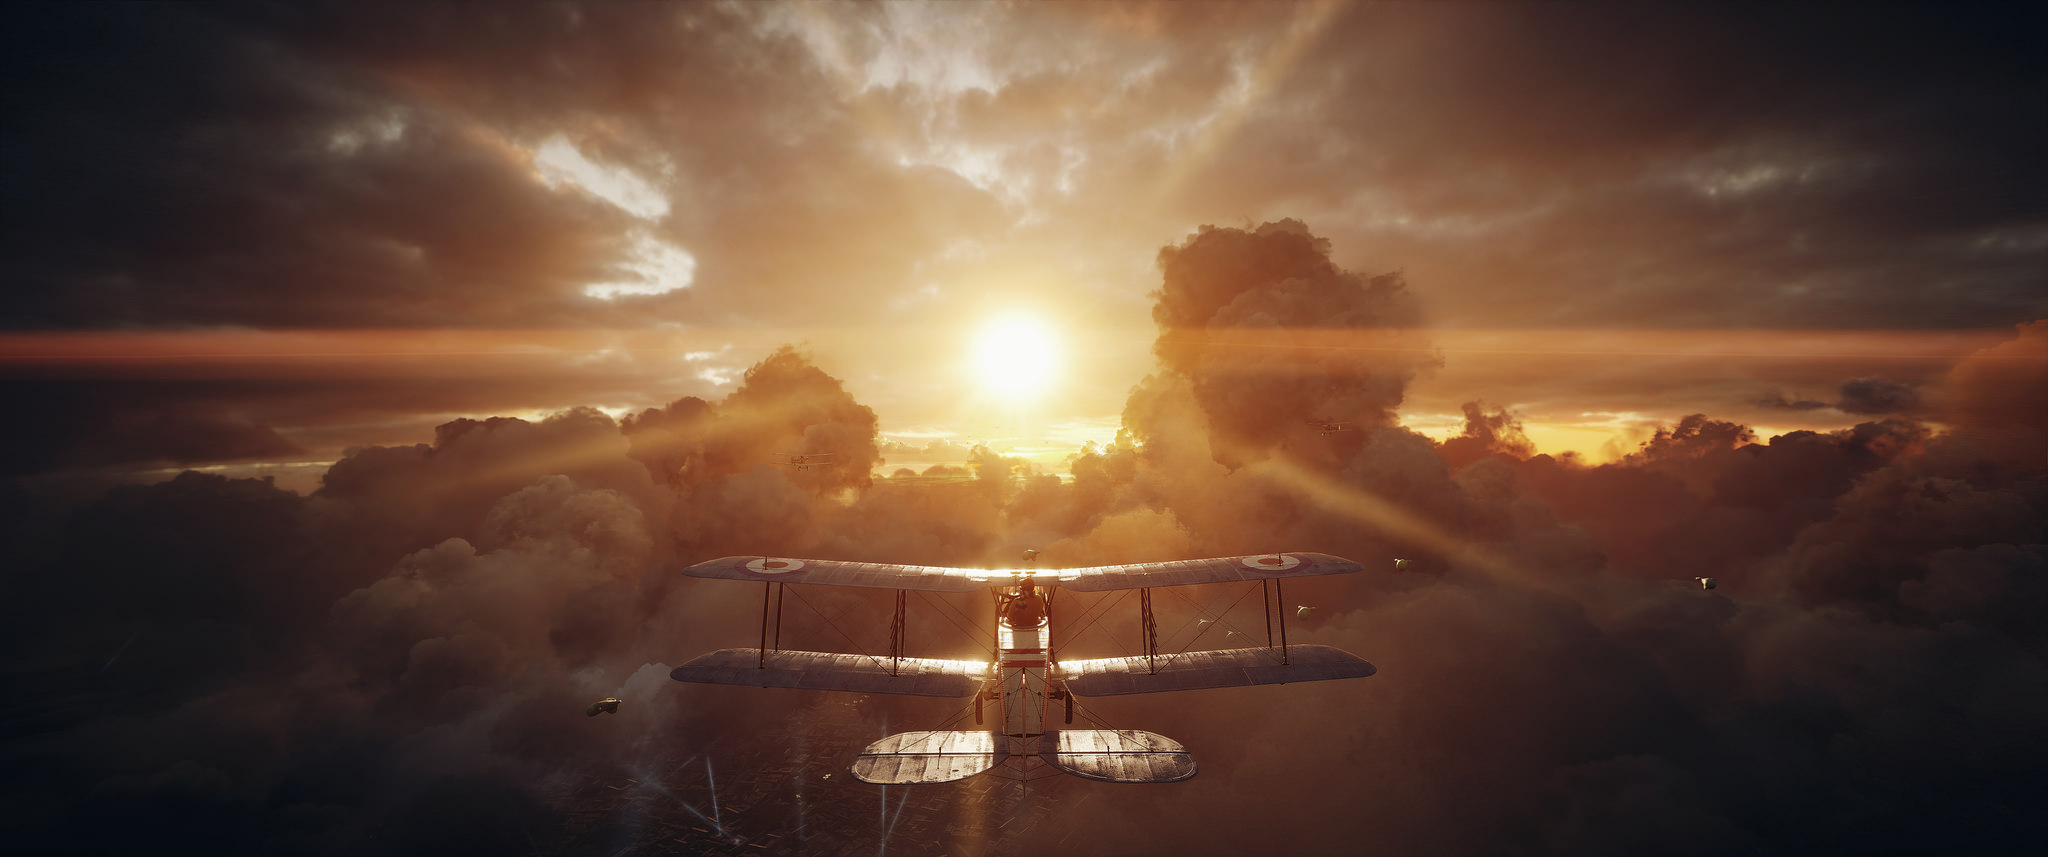 3D scanning tech drives major success in Battlefield 1